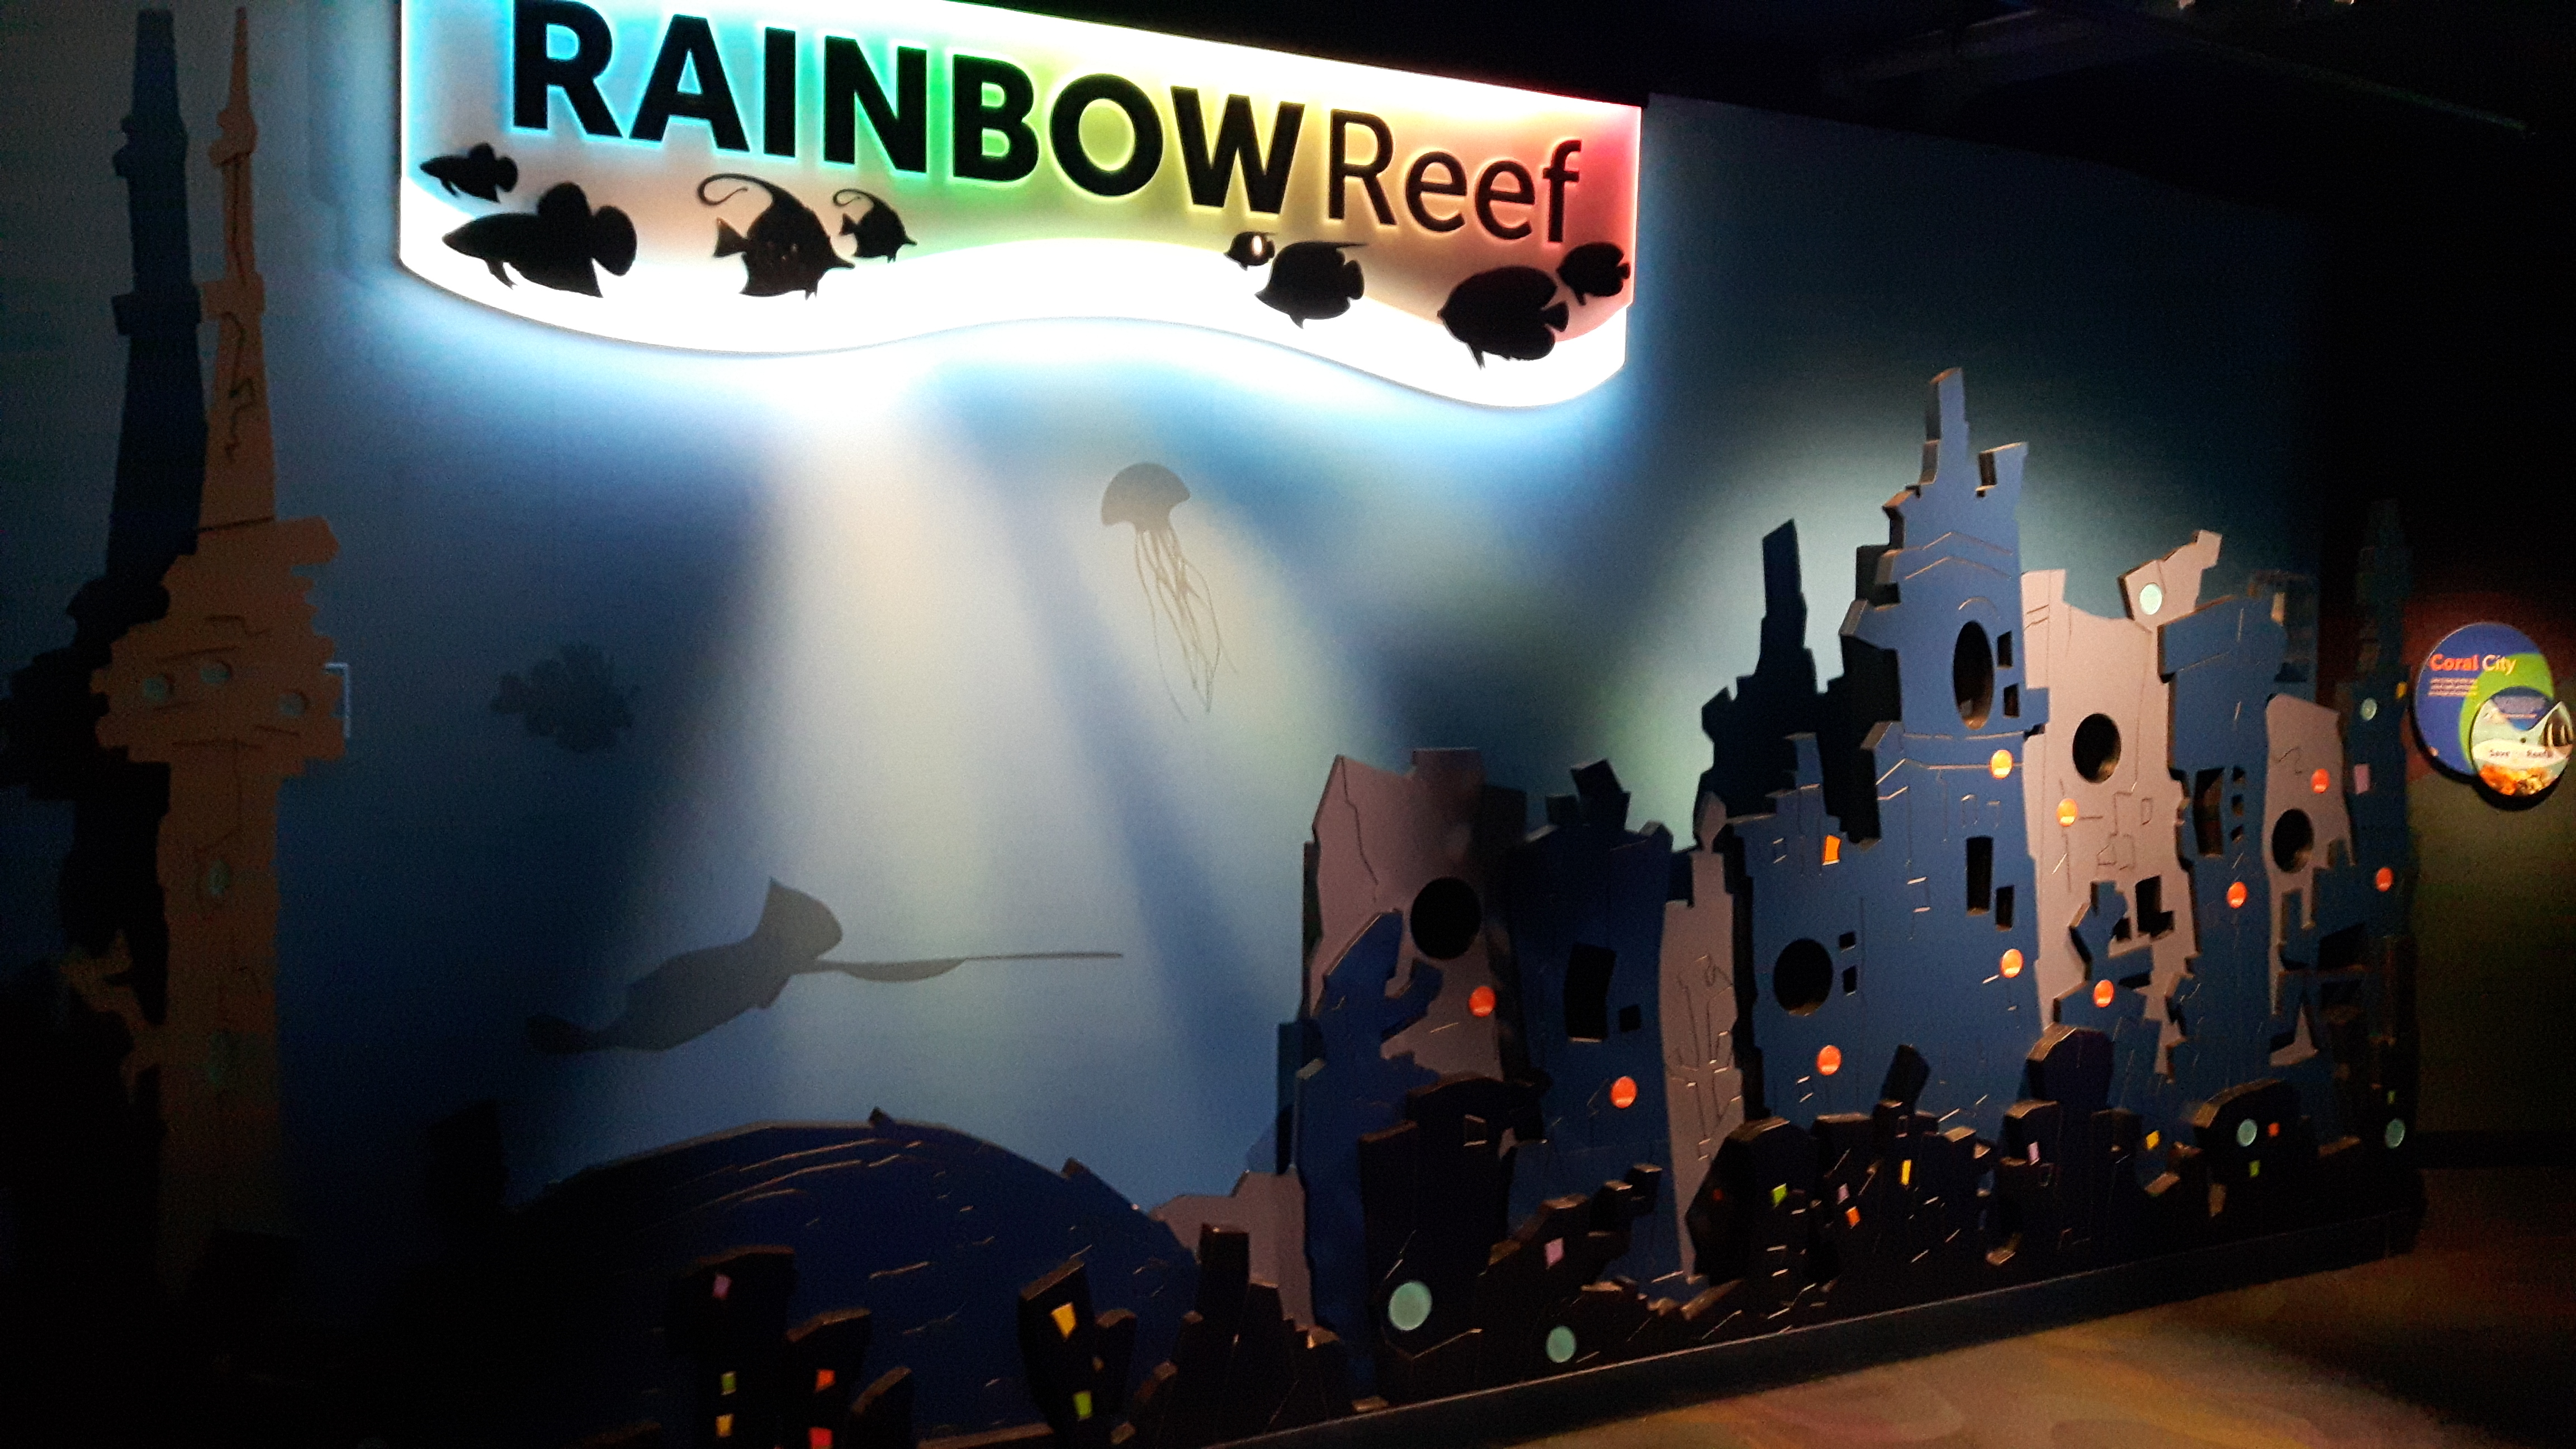 The Rainbow Reef is a fun photo opp at the Ripley's Jazz Night In Toronto